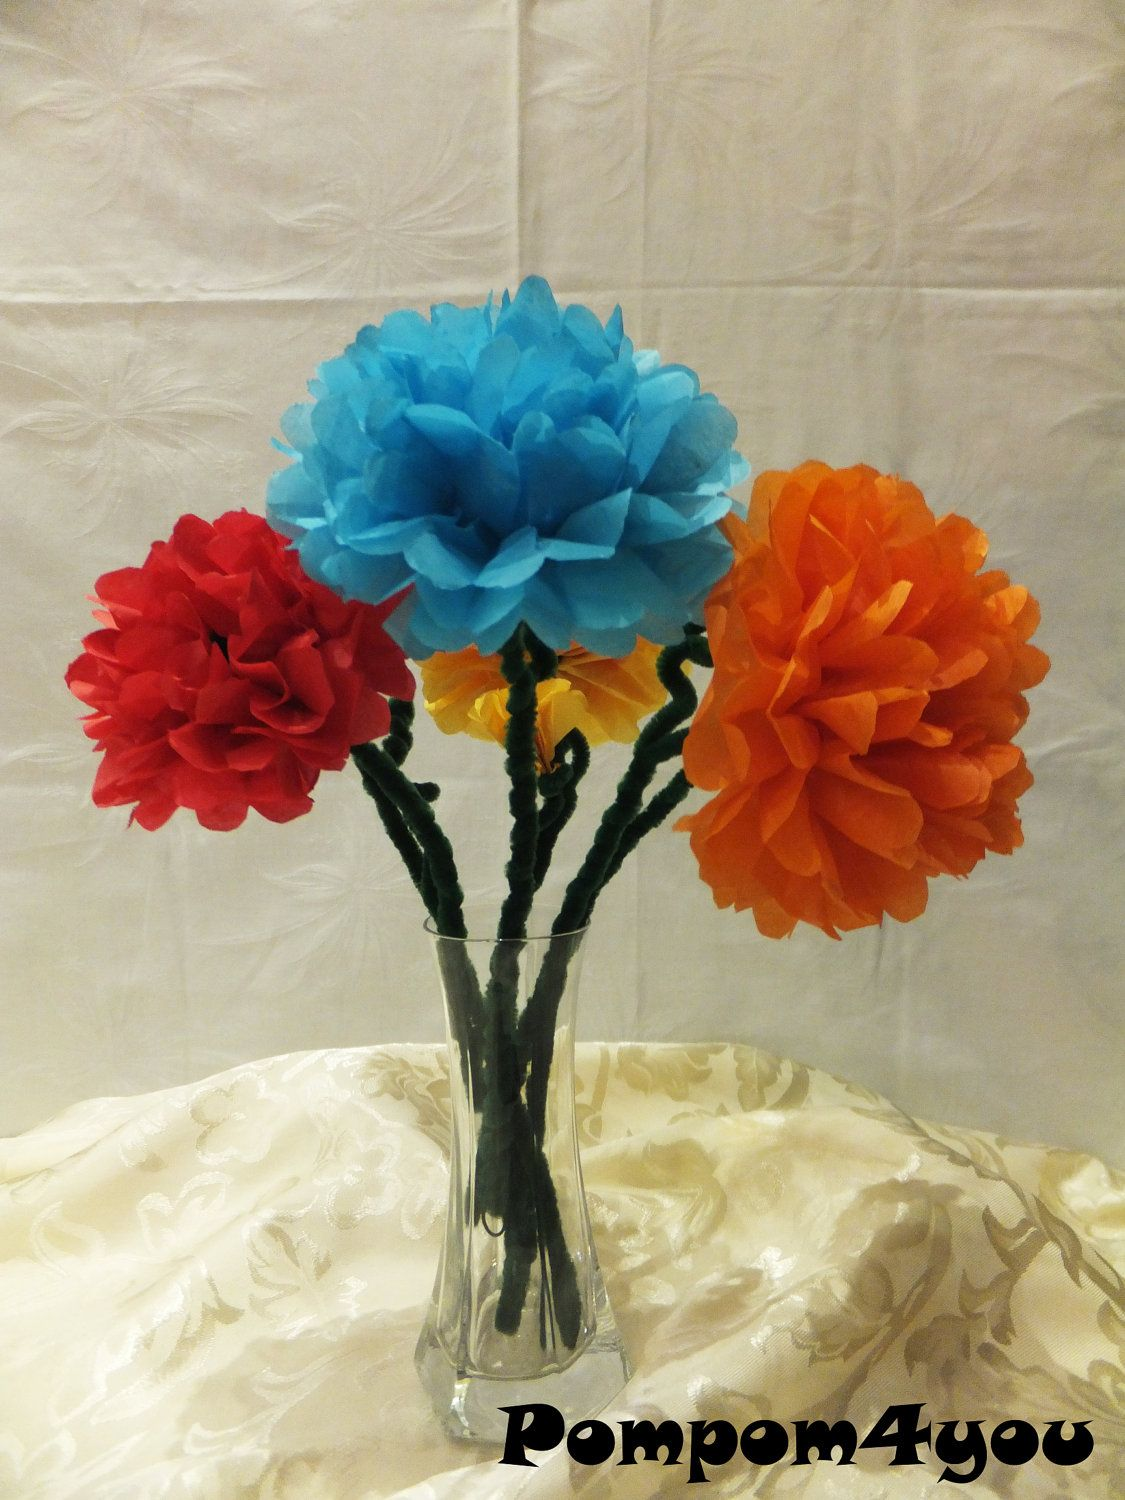 15 tissue paper flowers with pipe cleaner by pompom4you on etsy via 15 tissue paper flowers with pipe cleaner by pompom4you on etsy via etsy mightylinksfo